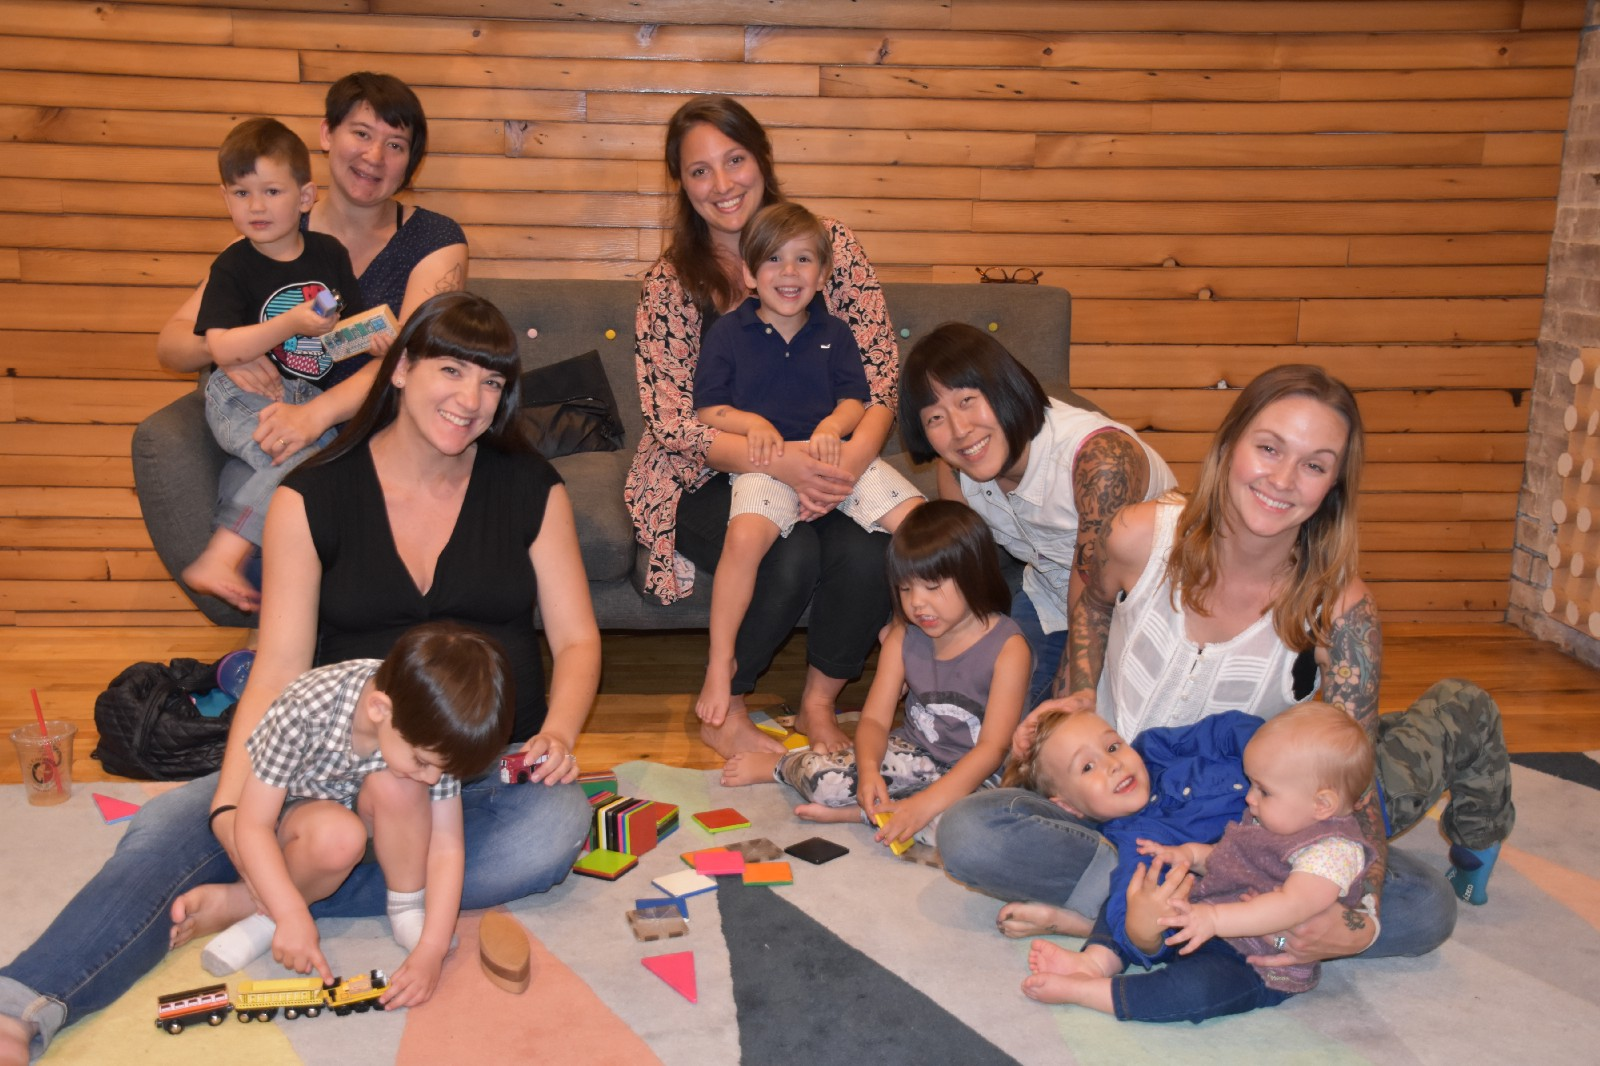 From l to r: Sarah Cullen, Michelle Rice, Maggie Wachter, Stefany Stuber  and Kimberly Geisler of Fishtown Mamas play with their children at PlayArts  on ...